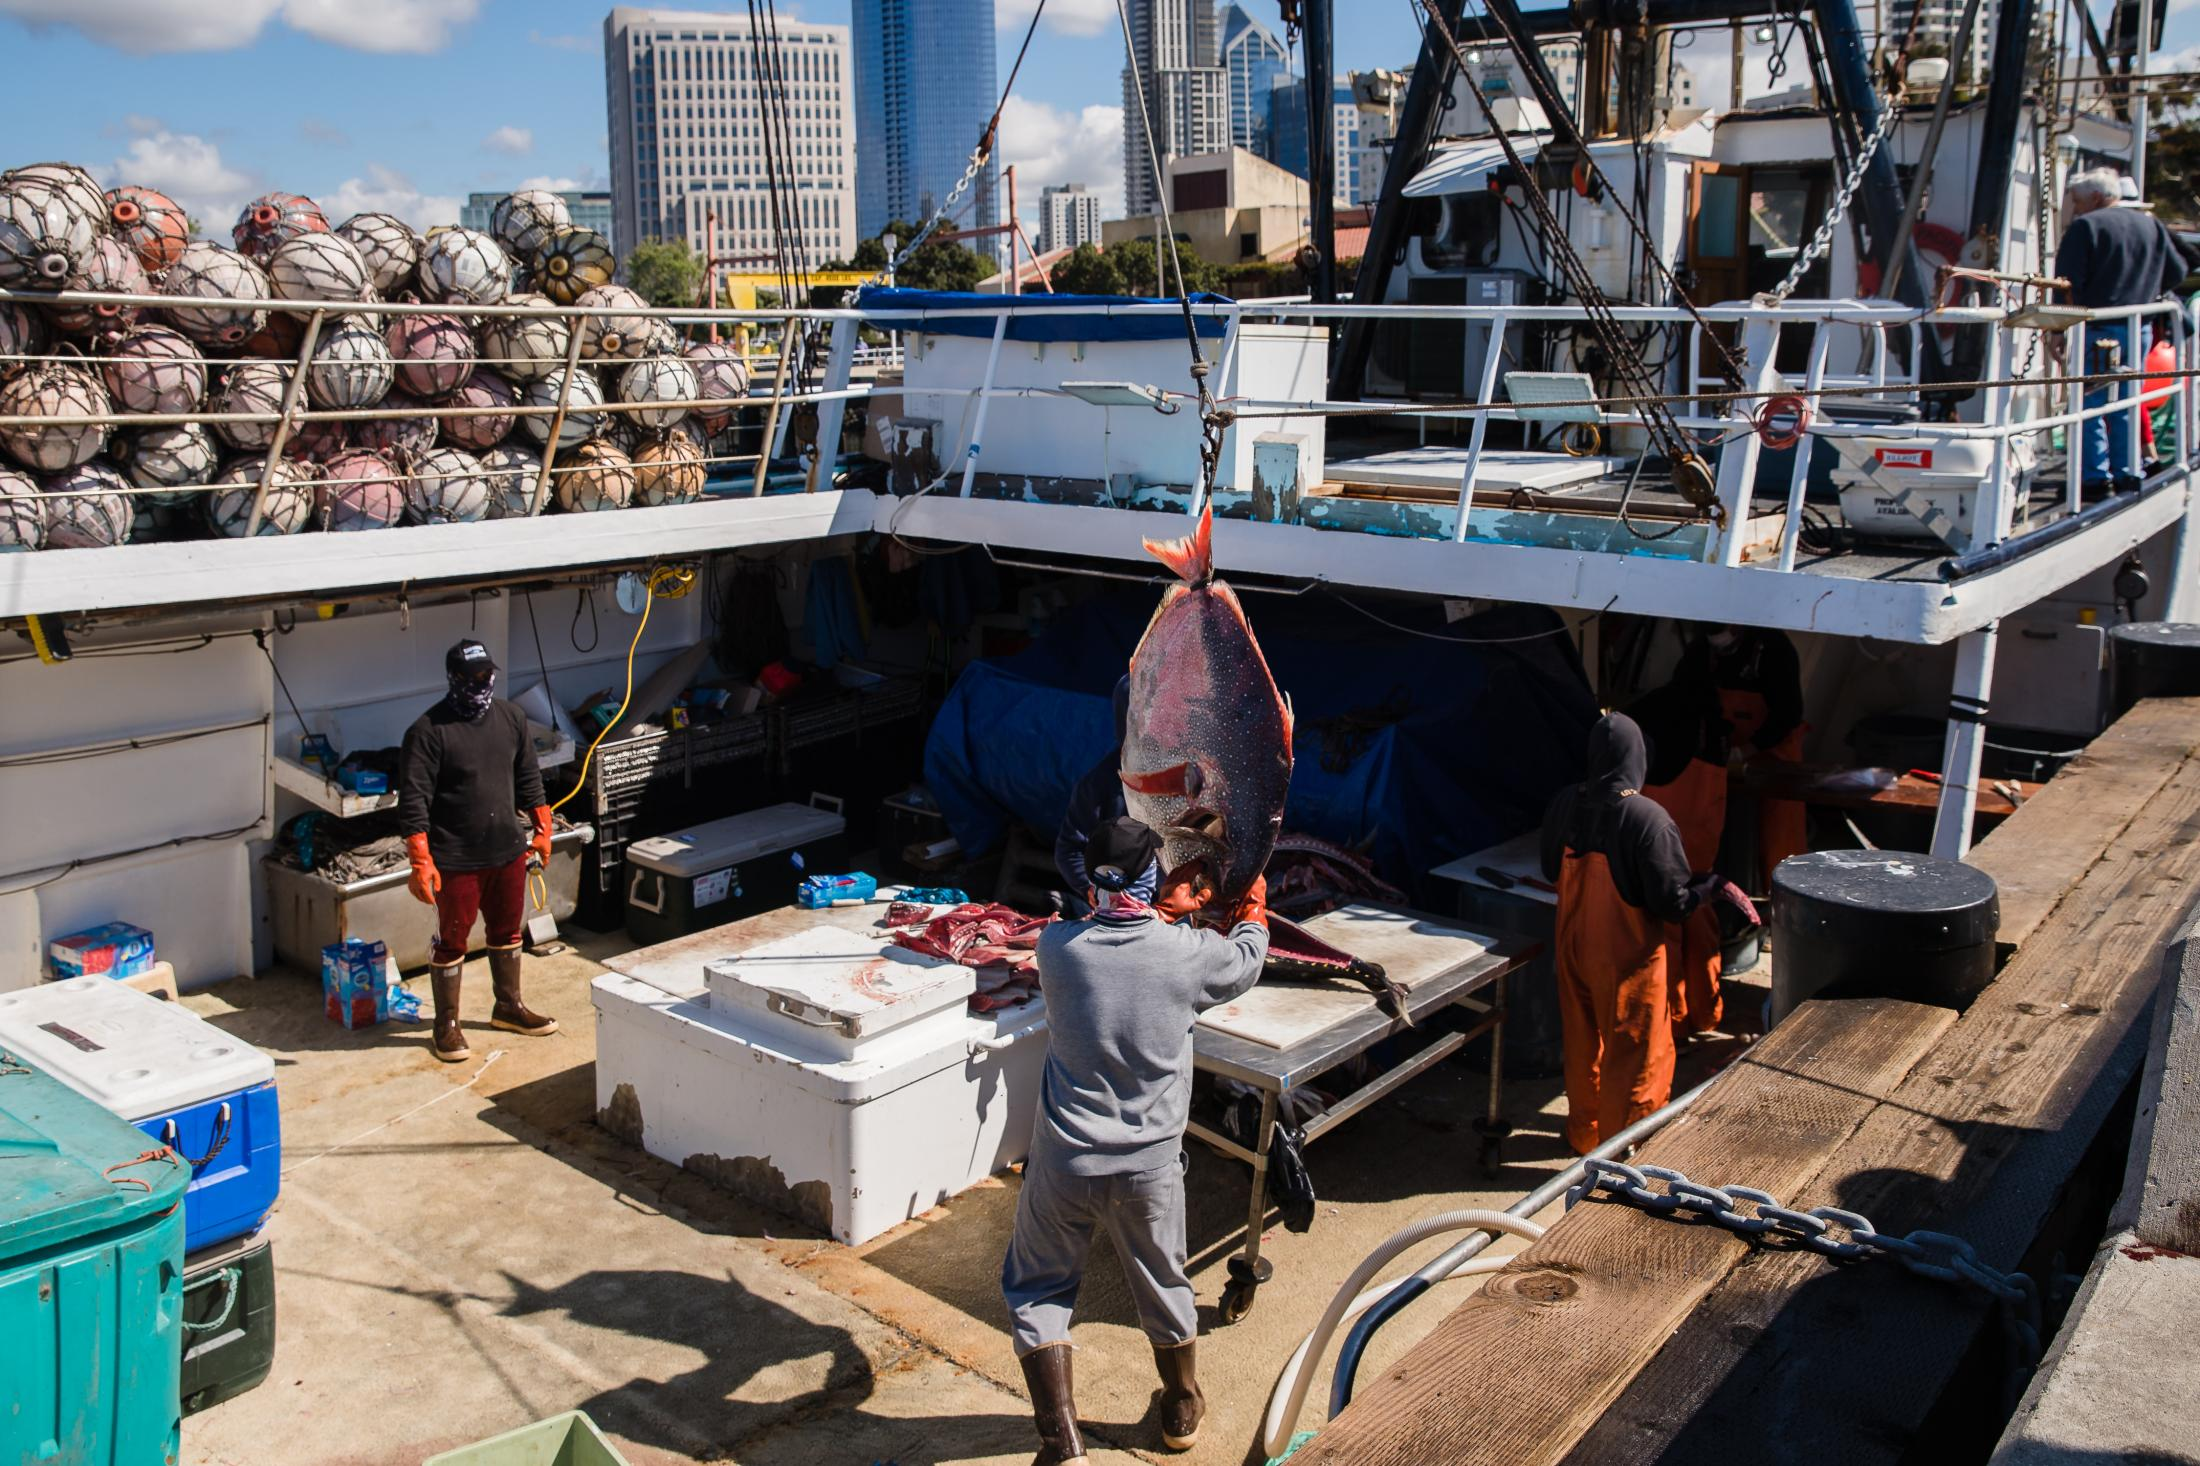 A fisherman gets ready to cut fish on the Pacific Horizon fishing Boat (owned by the Haworth family) at the Tuna Harbor Dockside Market on April 11, 2020 in San Diego, California. Fisherman have had to regroup due to Covid-19. Since local restaurants have been shut down and not every establishment is doing take-out or deliveries, they have to had to lower their cost for the locals who have been purchasing their fish.